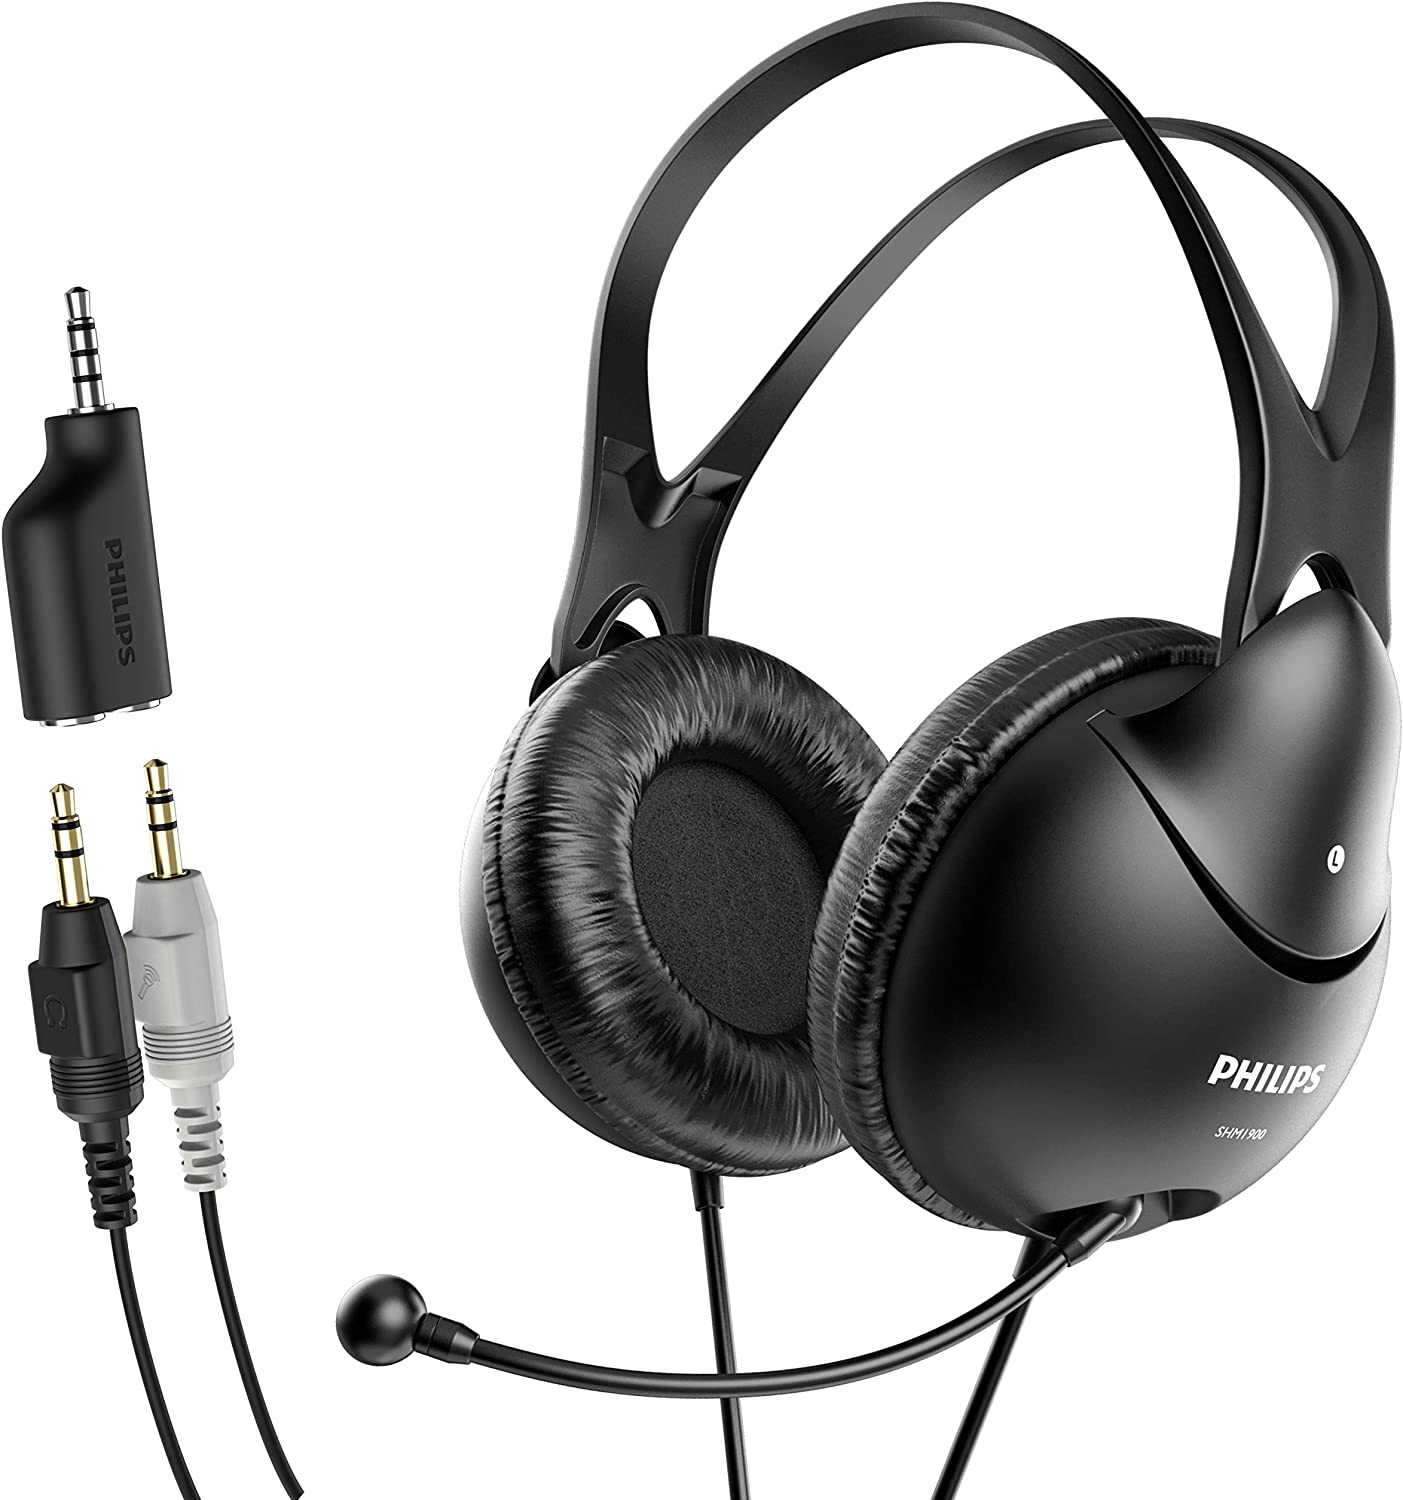 Philips Computer Headset with Microphone for Laptop, Zoom, Skype - 3.5 MM Lightweight Computer Headphones with Echo Cancelling Mic for Home Office, Call Center, Skype, Zoom